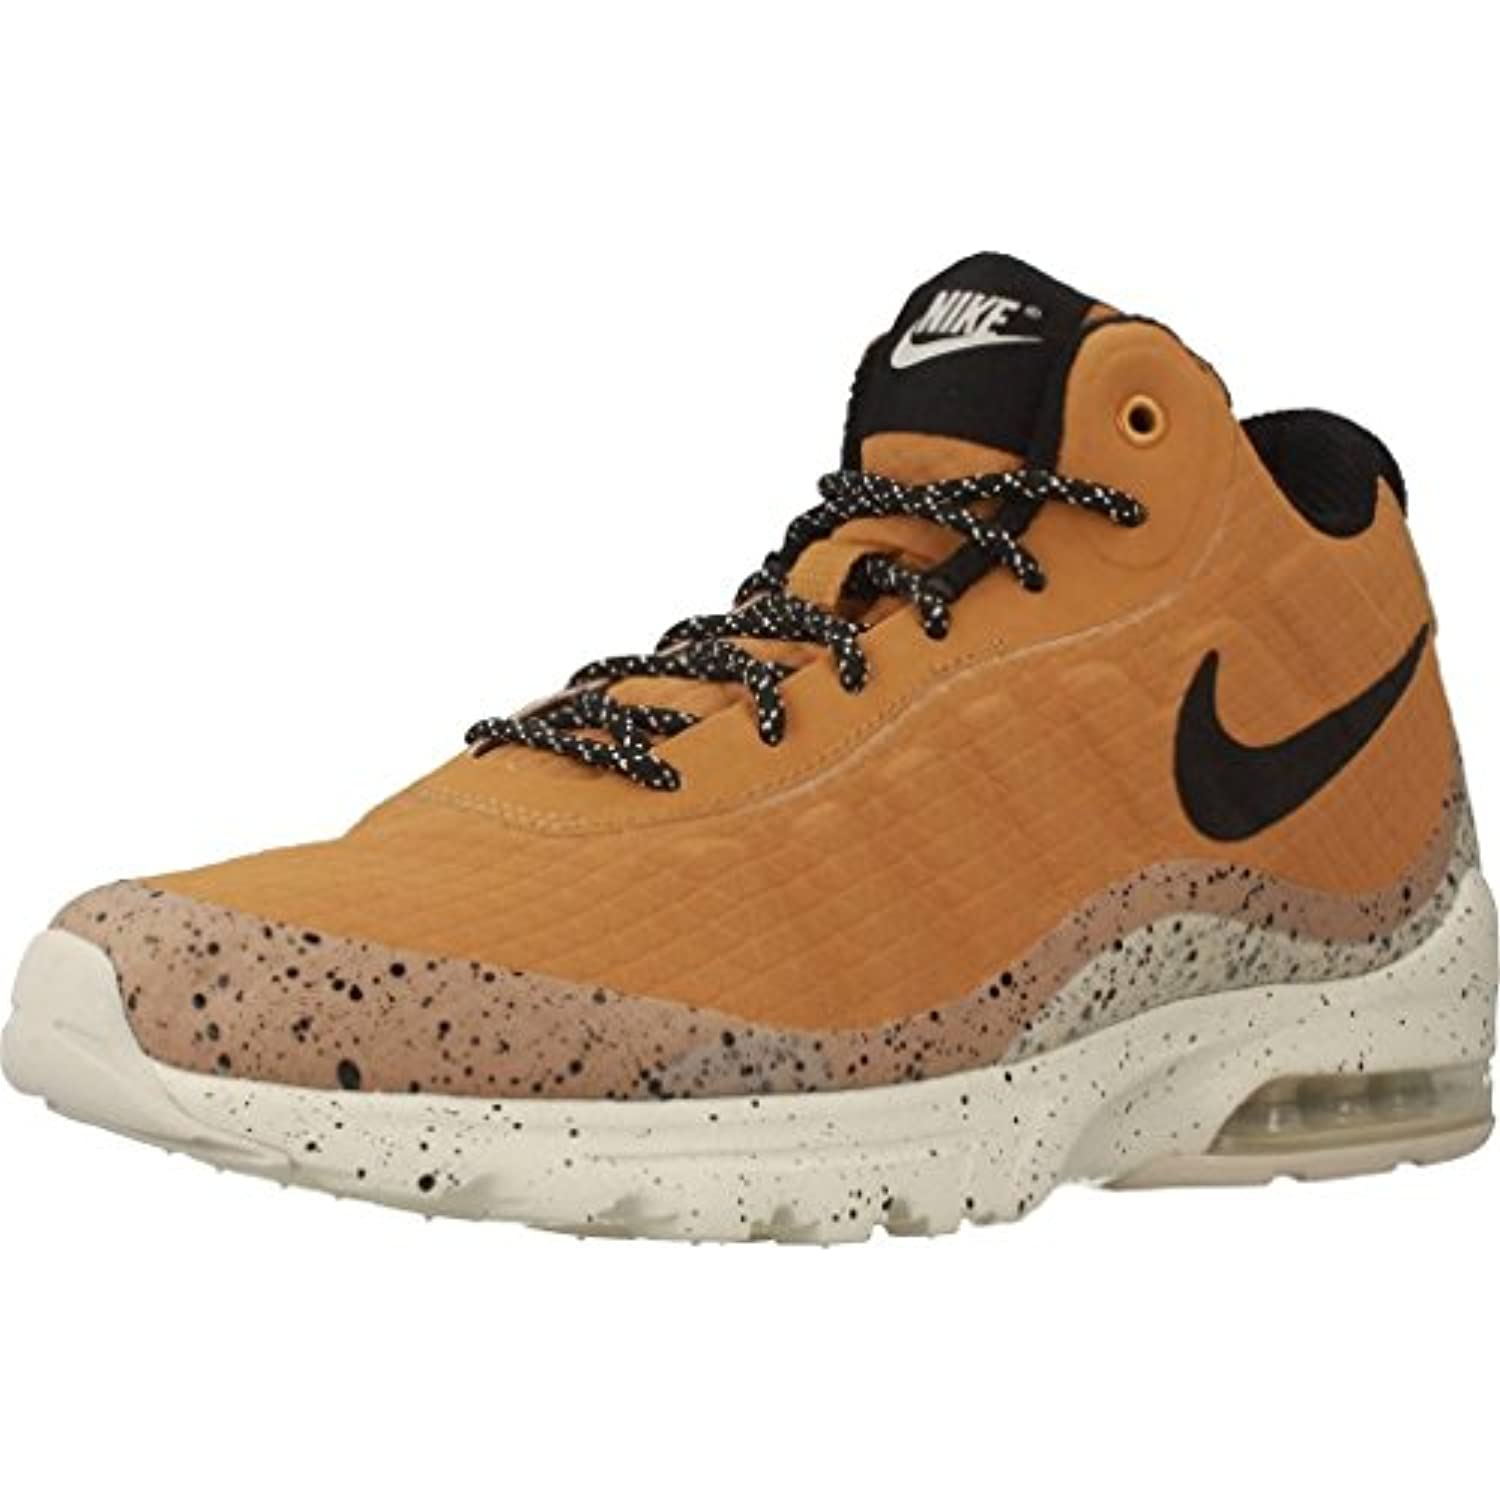 cheap for discount e0b6f c4a9e NIKE Mid, Air Max Invigor Mid, NIKE Chaussures de Fitness Homme -  B000AYA2VS -